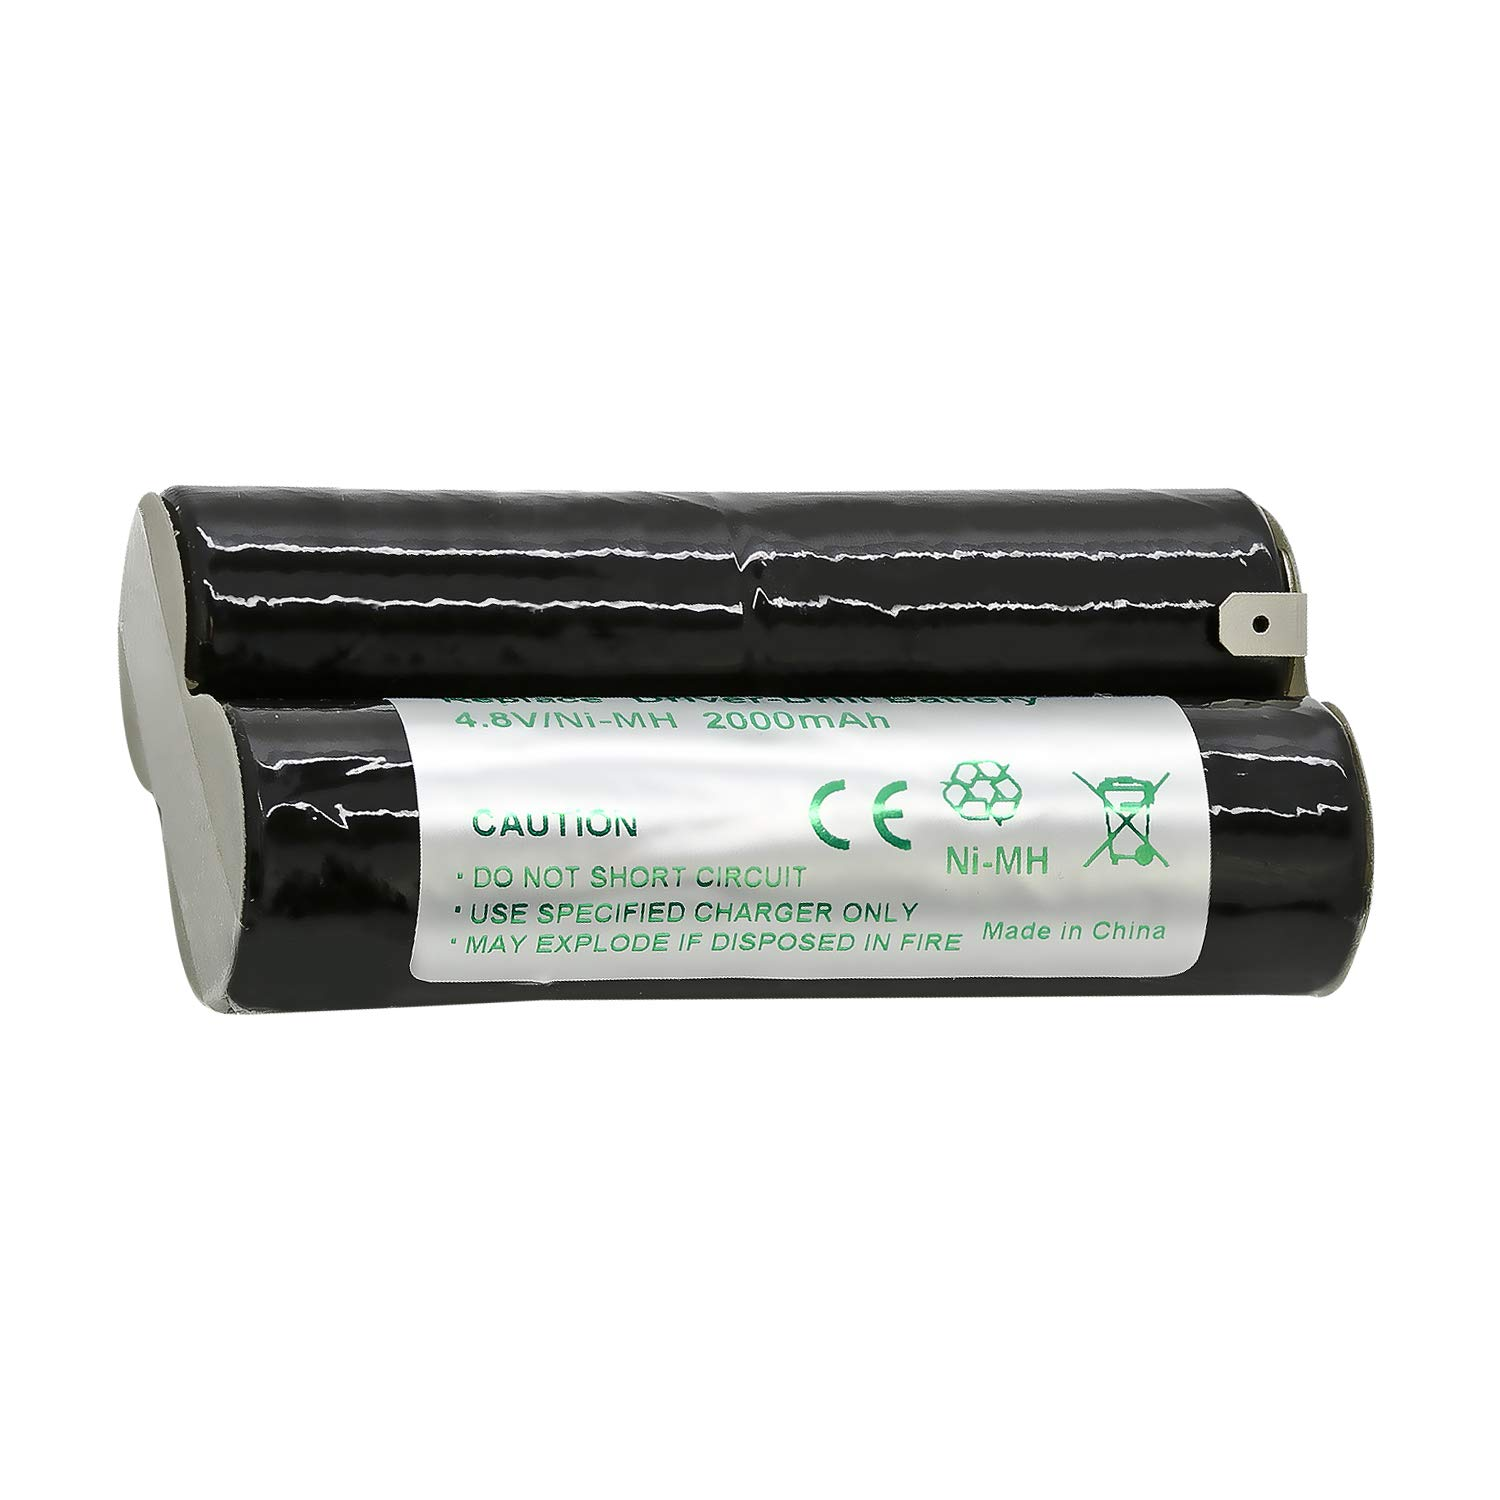 ExpertPower 4.8v 2000mAh NiMh Battery for Makita 678102-6 6041D 6041DW 6043D 6043DWK